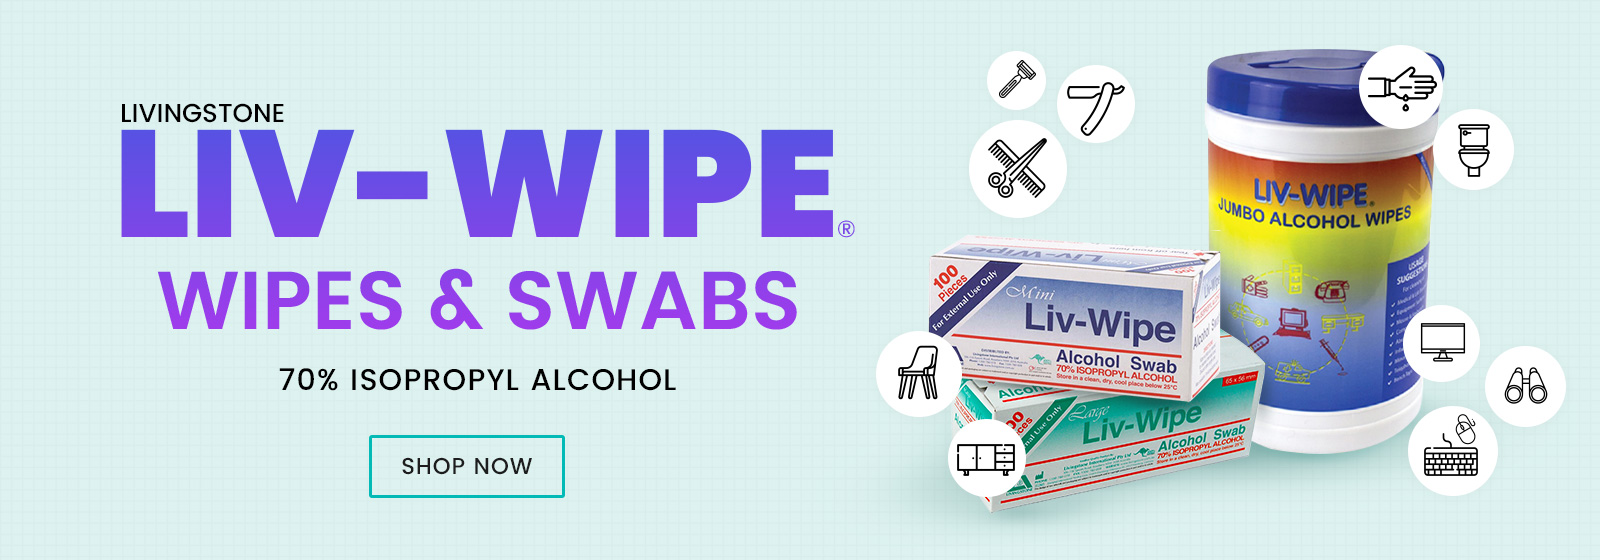 70% Isopropyl Alcohol Wipes & Swabs Available at Catwalk